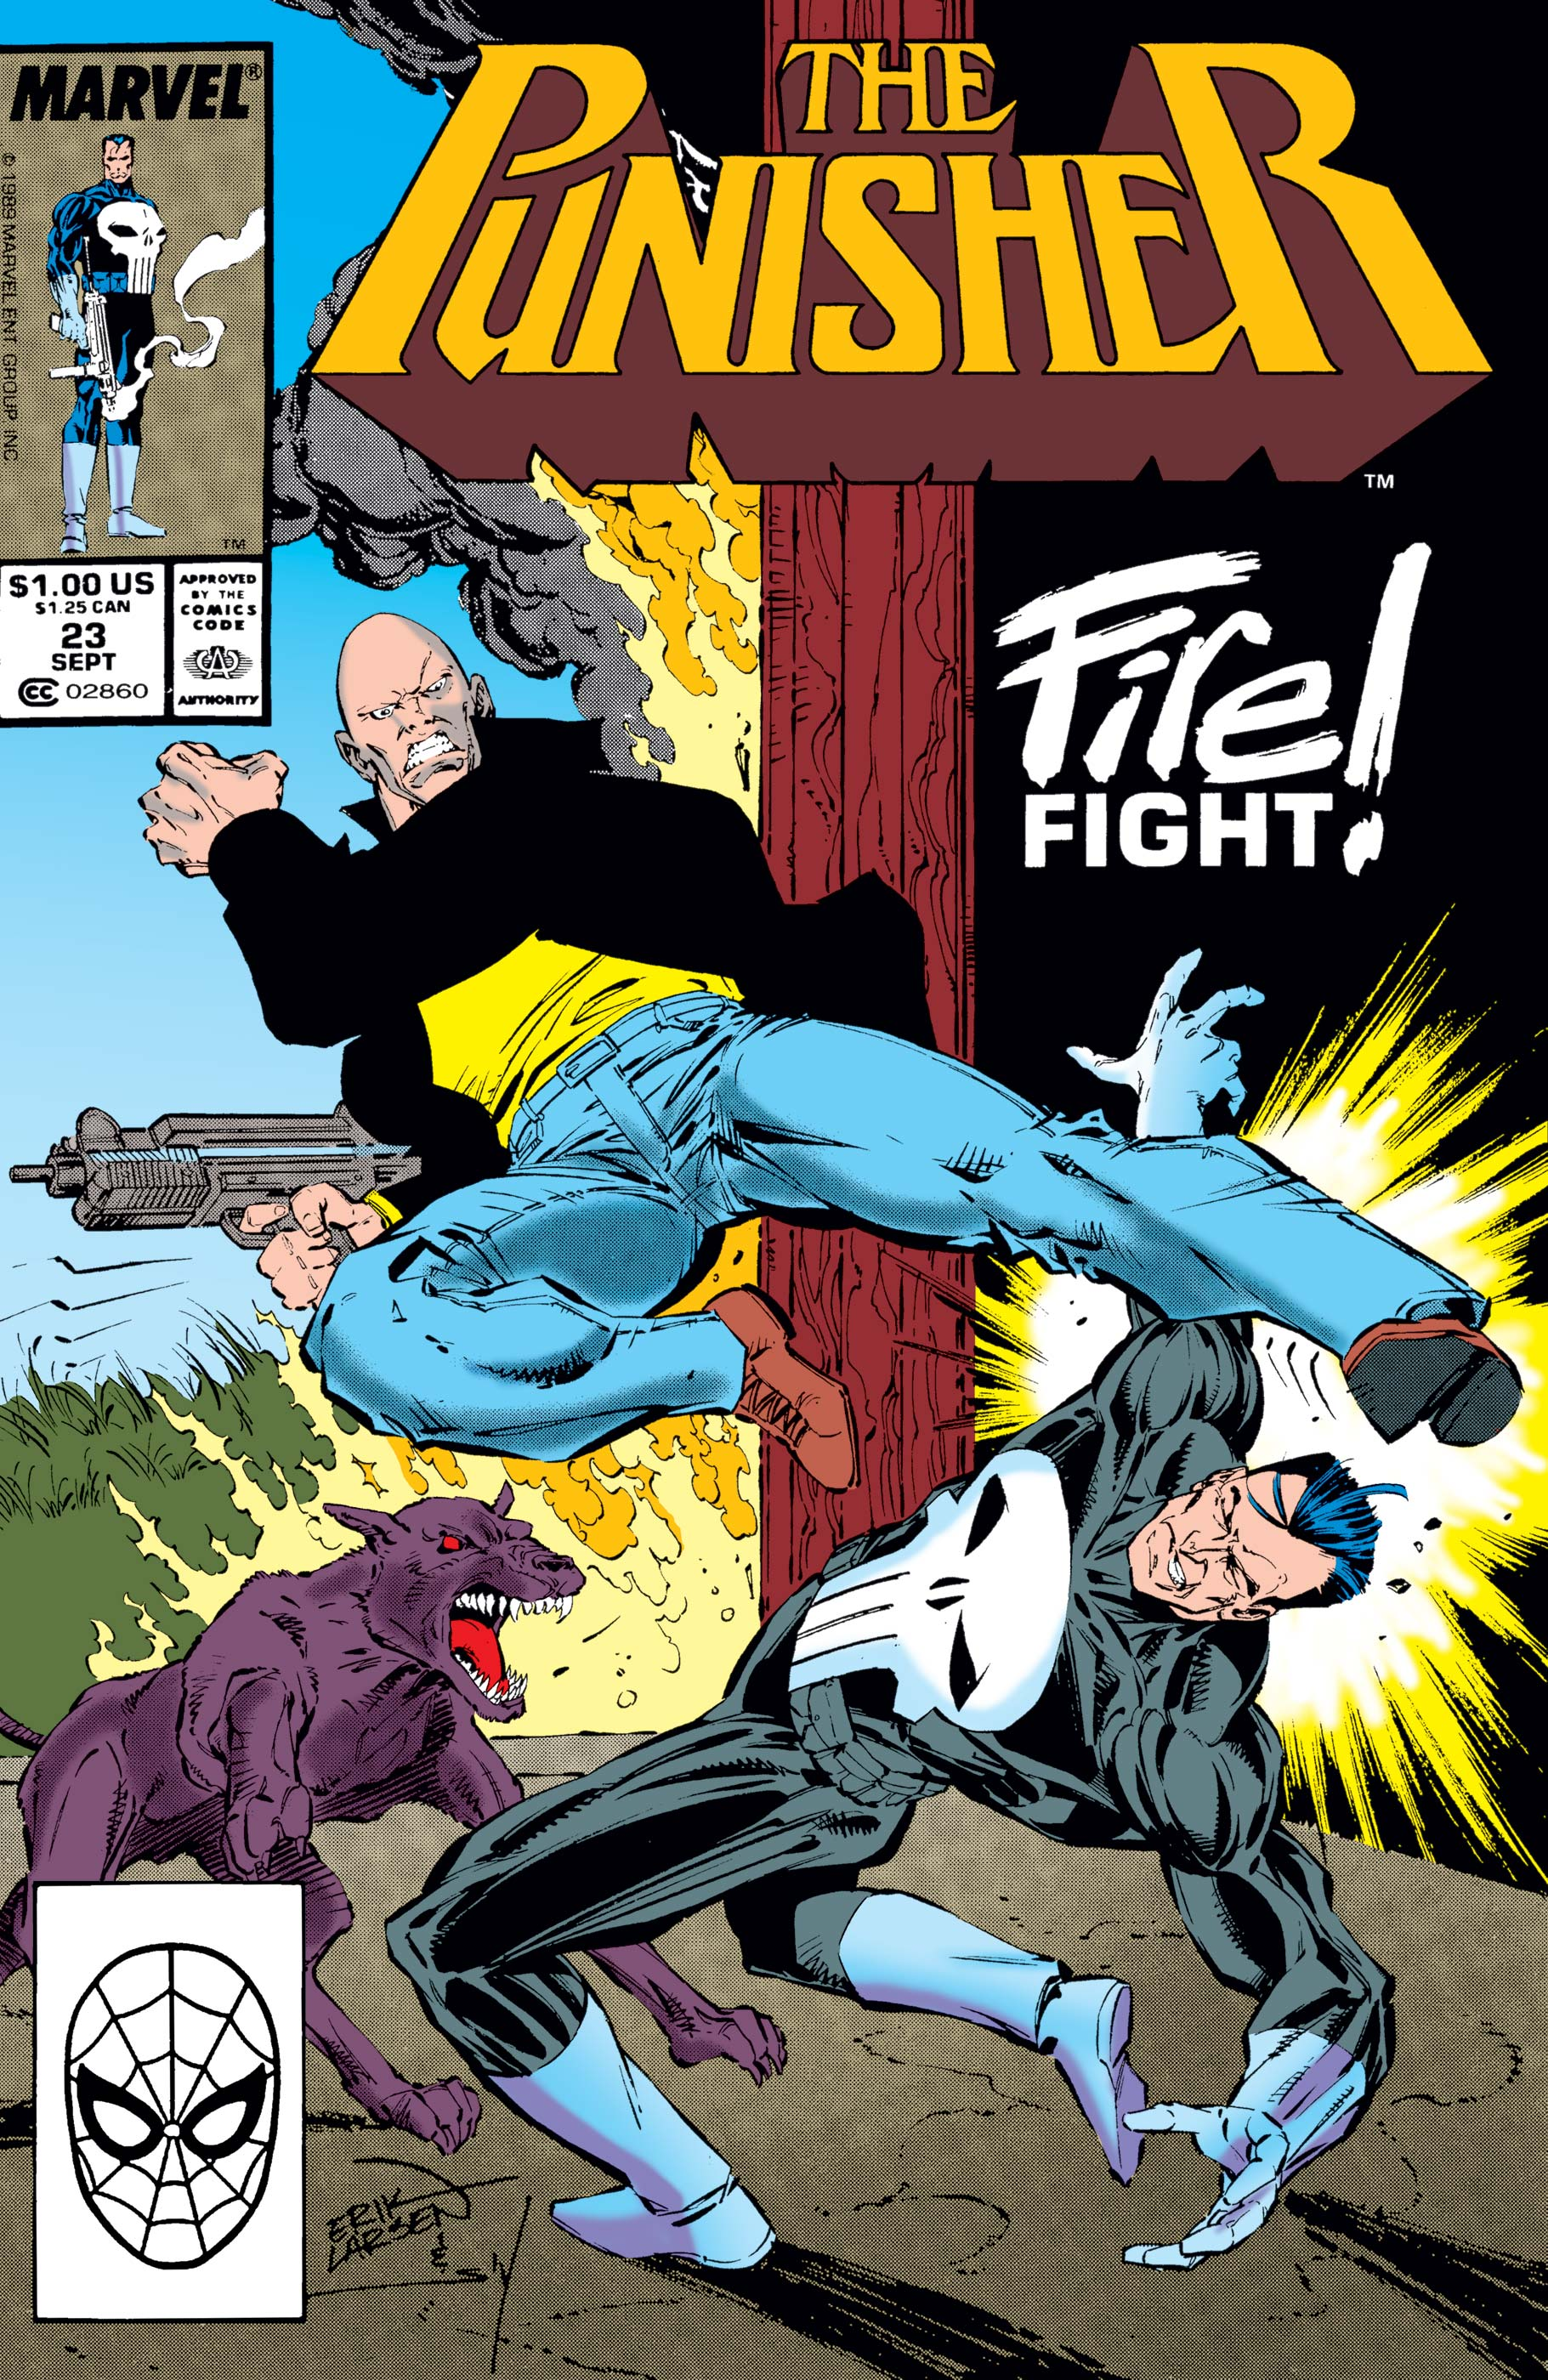 The Punisher (1987) #23